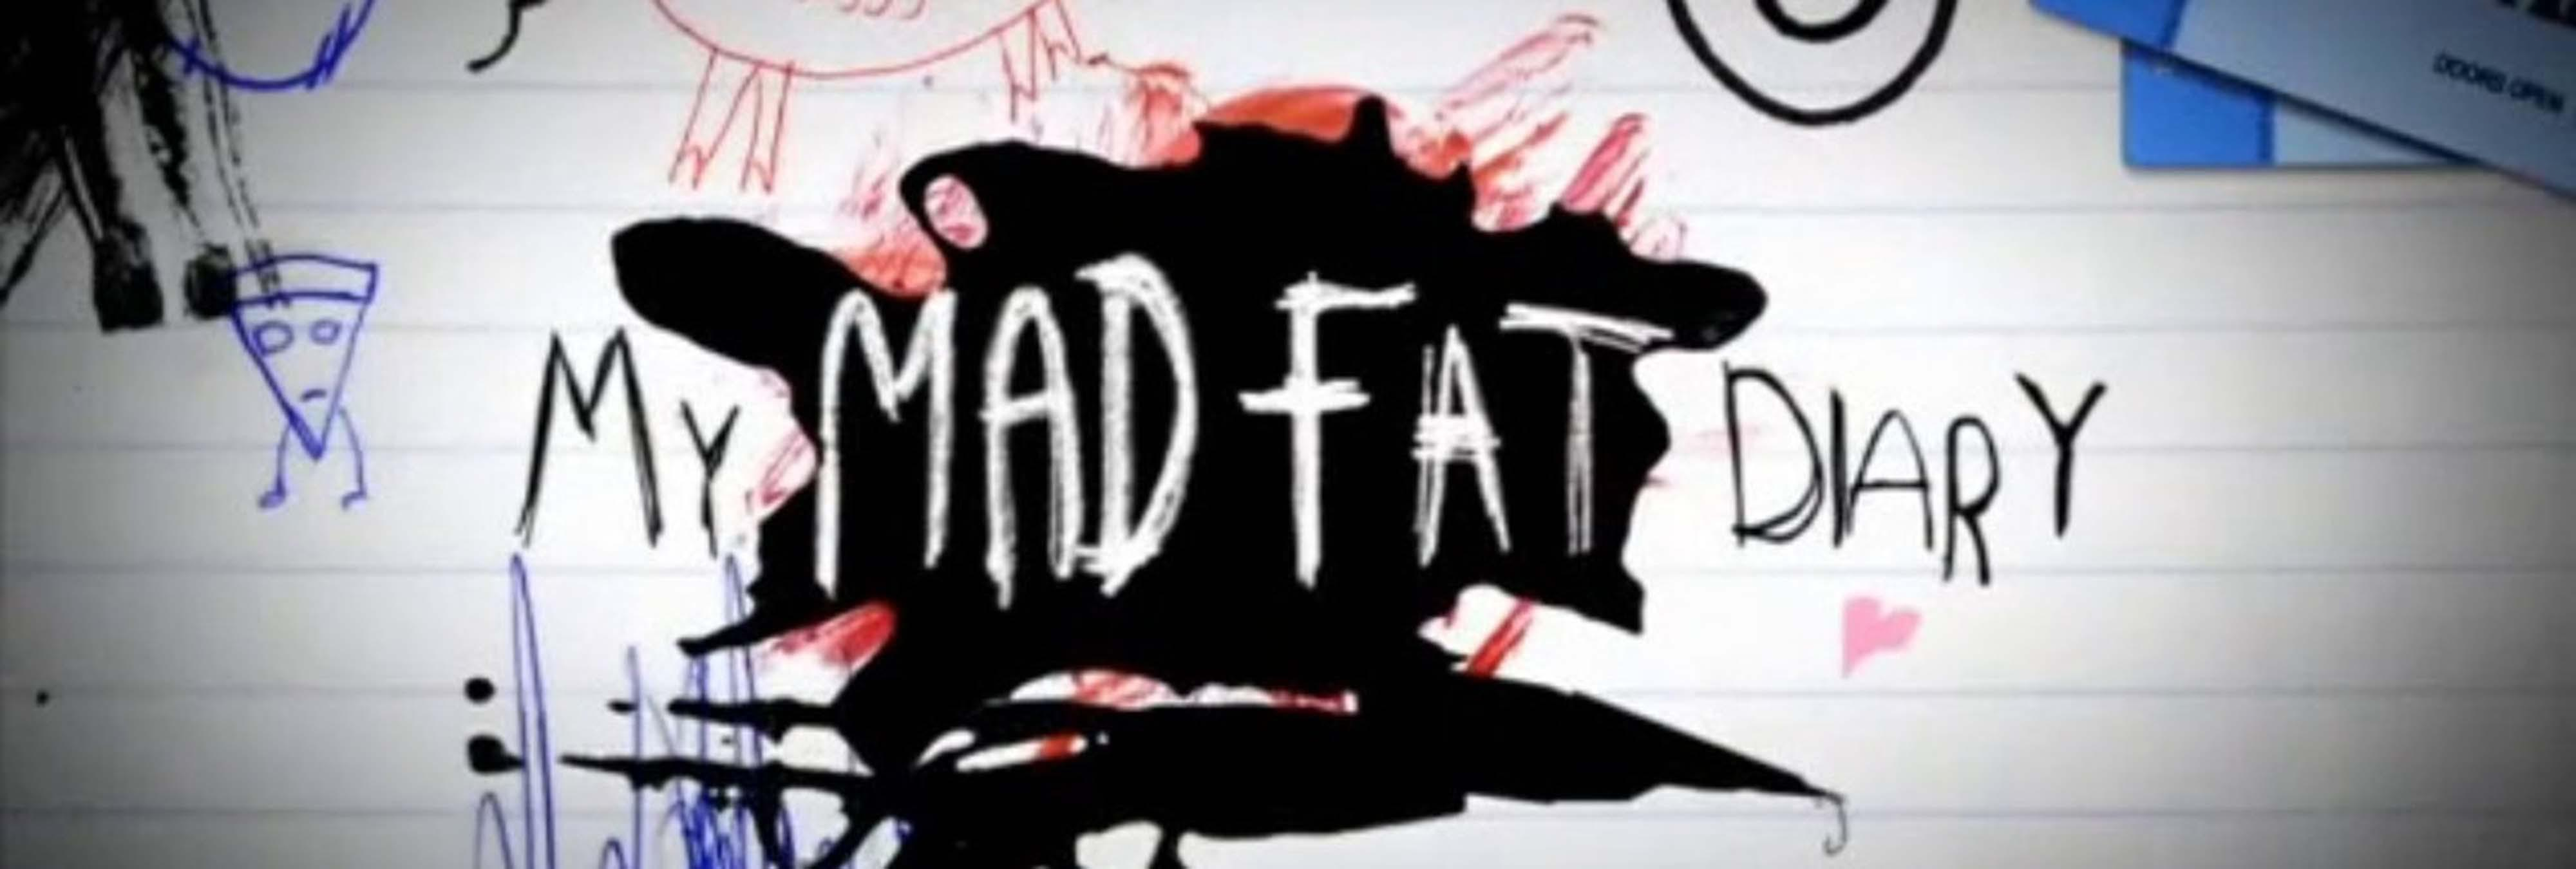 'My Mad Fat Diary', una serie capaz de eclipsar a '13 Reasons Why'